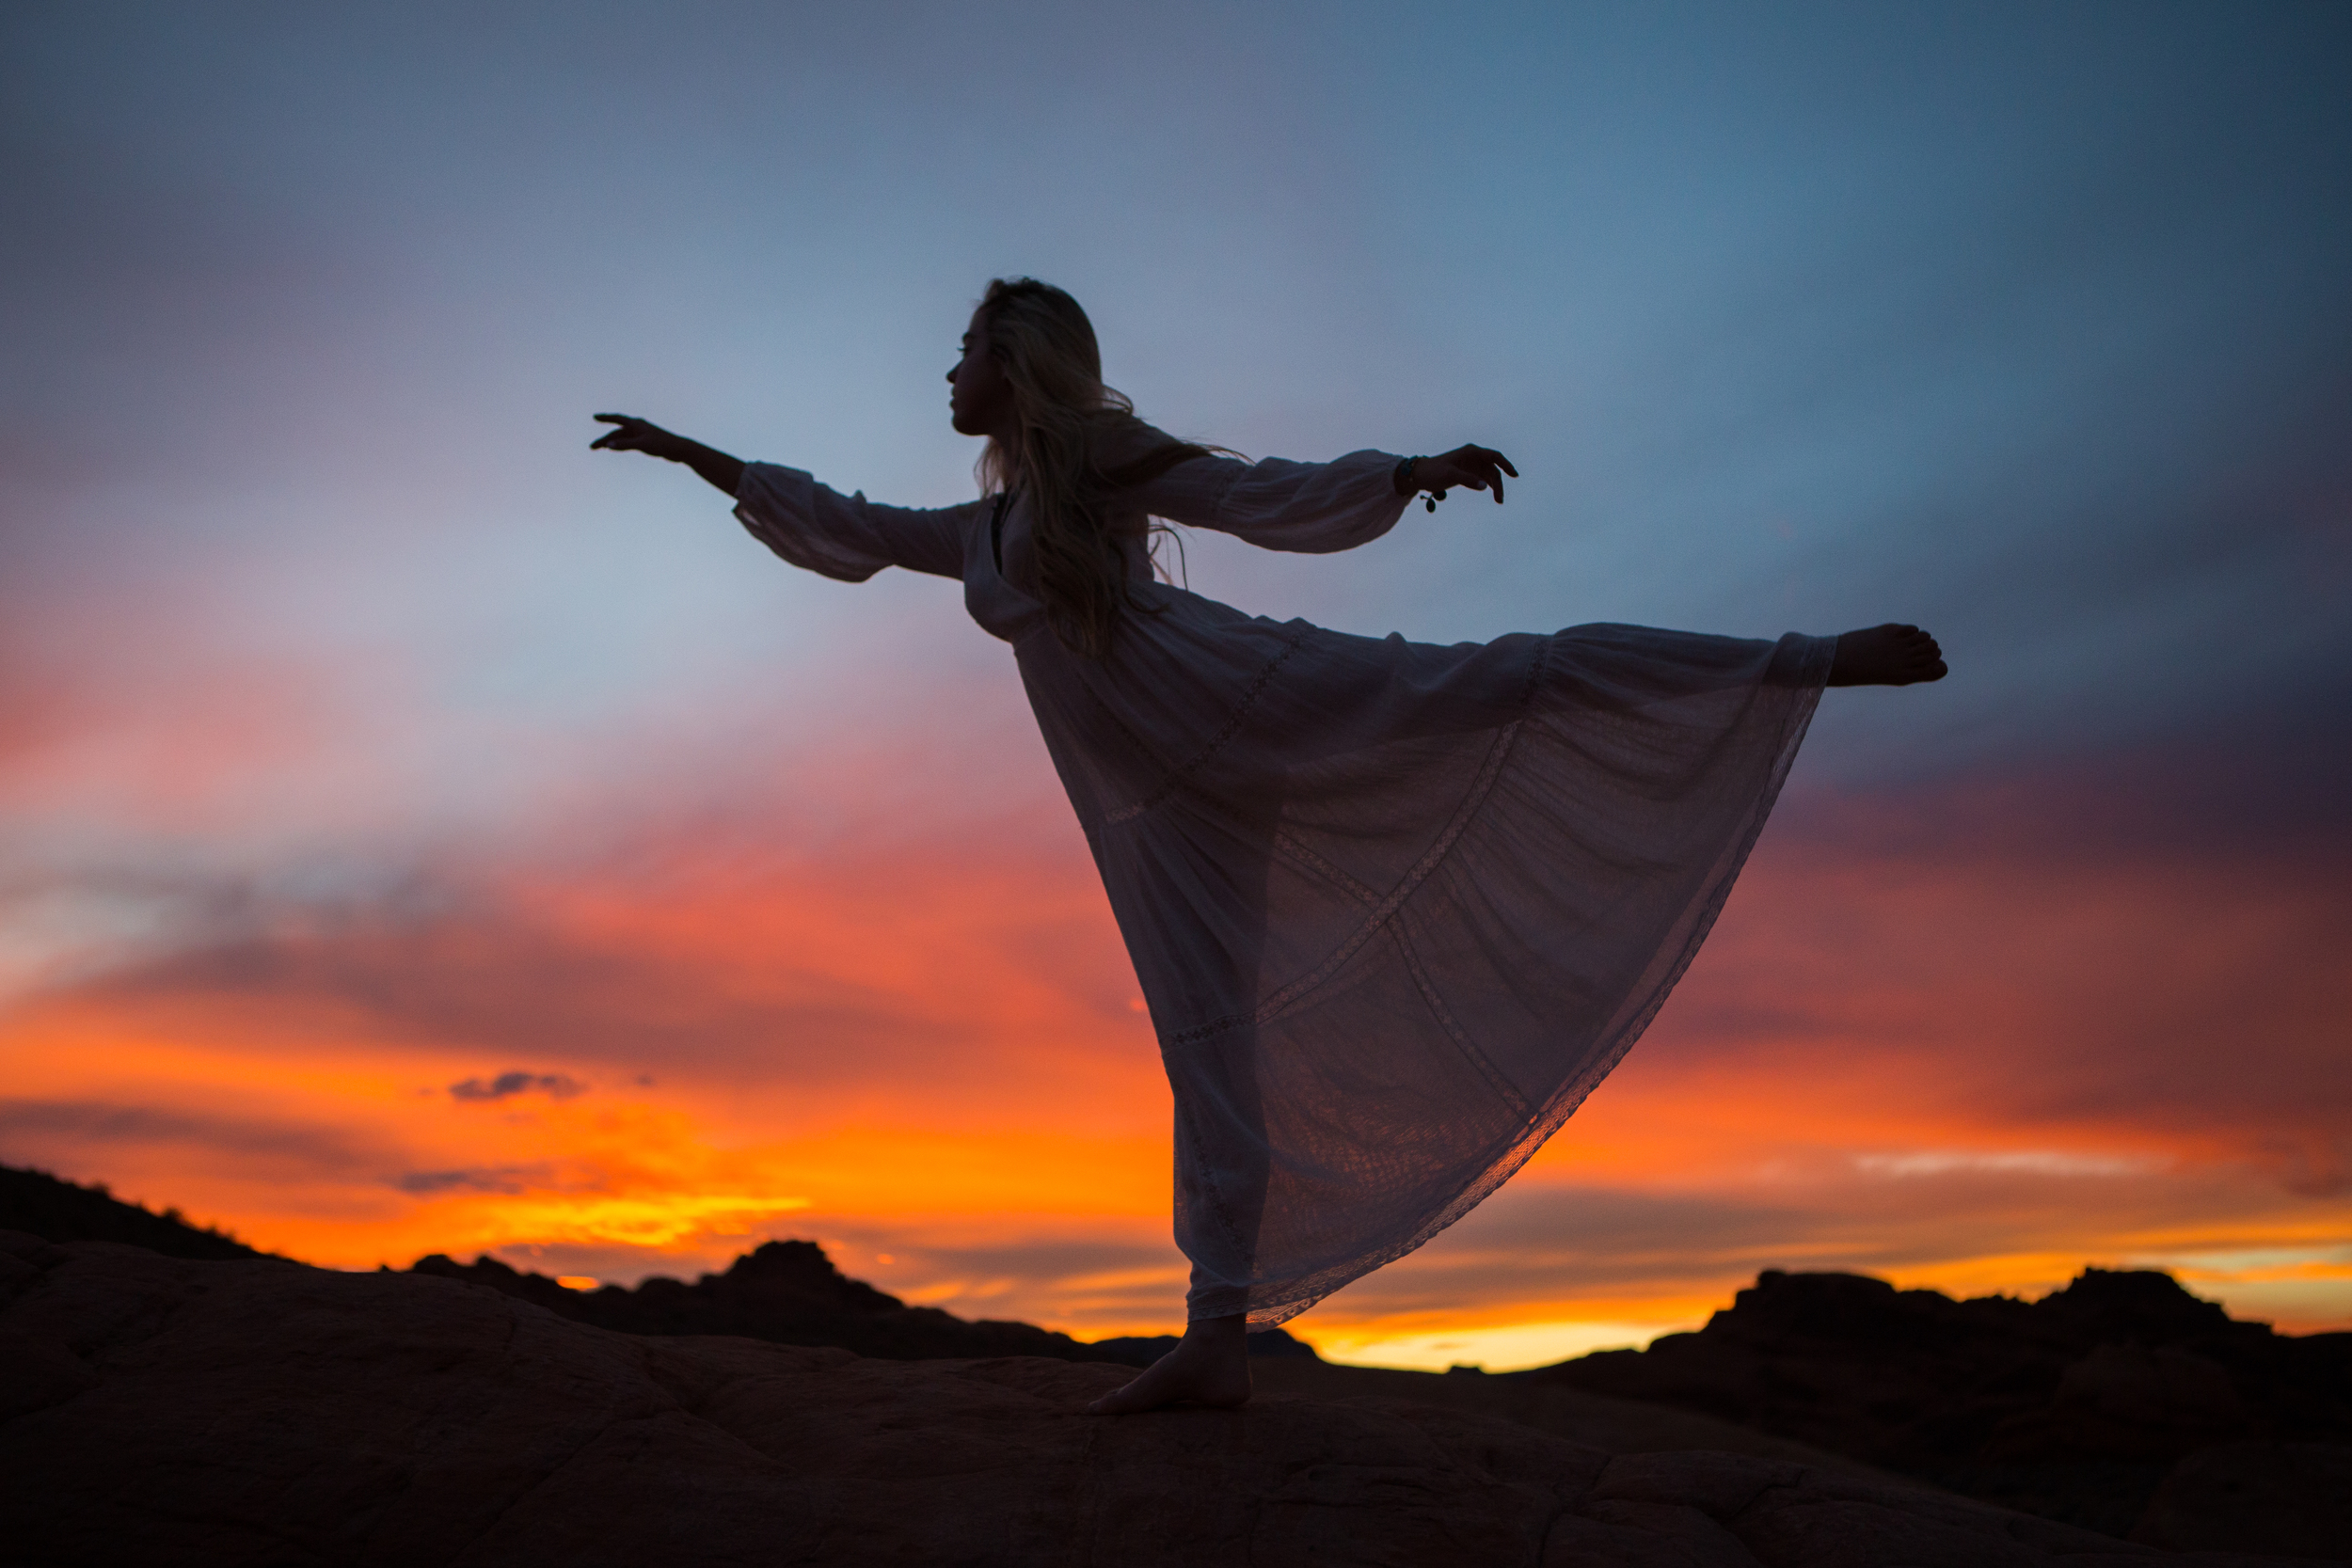 AstroBandit_ValleyOfFire_Sunset_WhiteDress_Dancing_Fashon_10.jpg